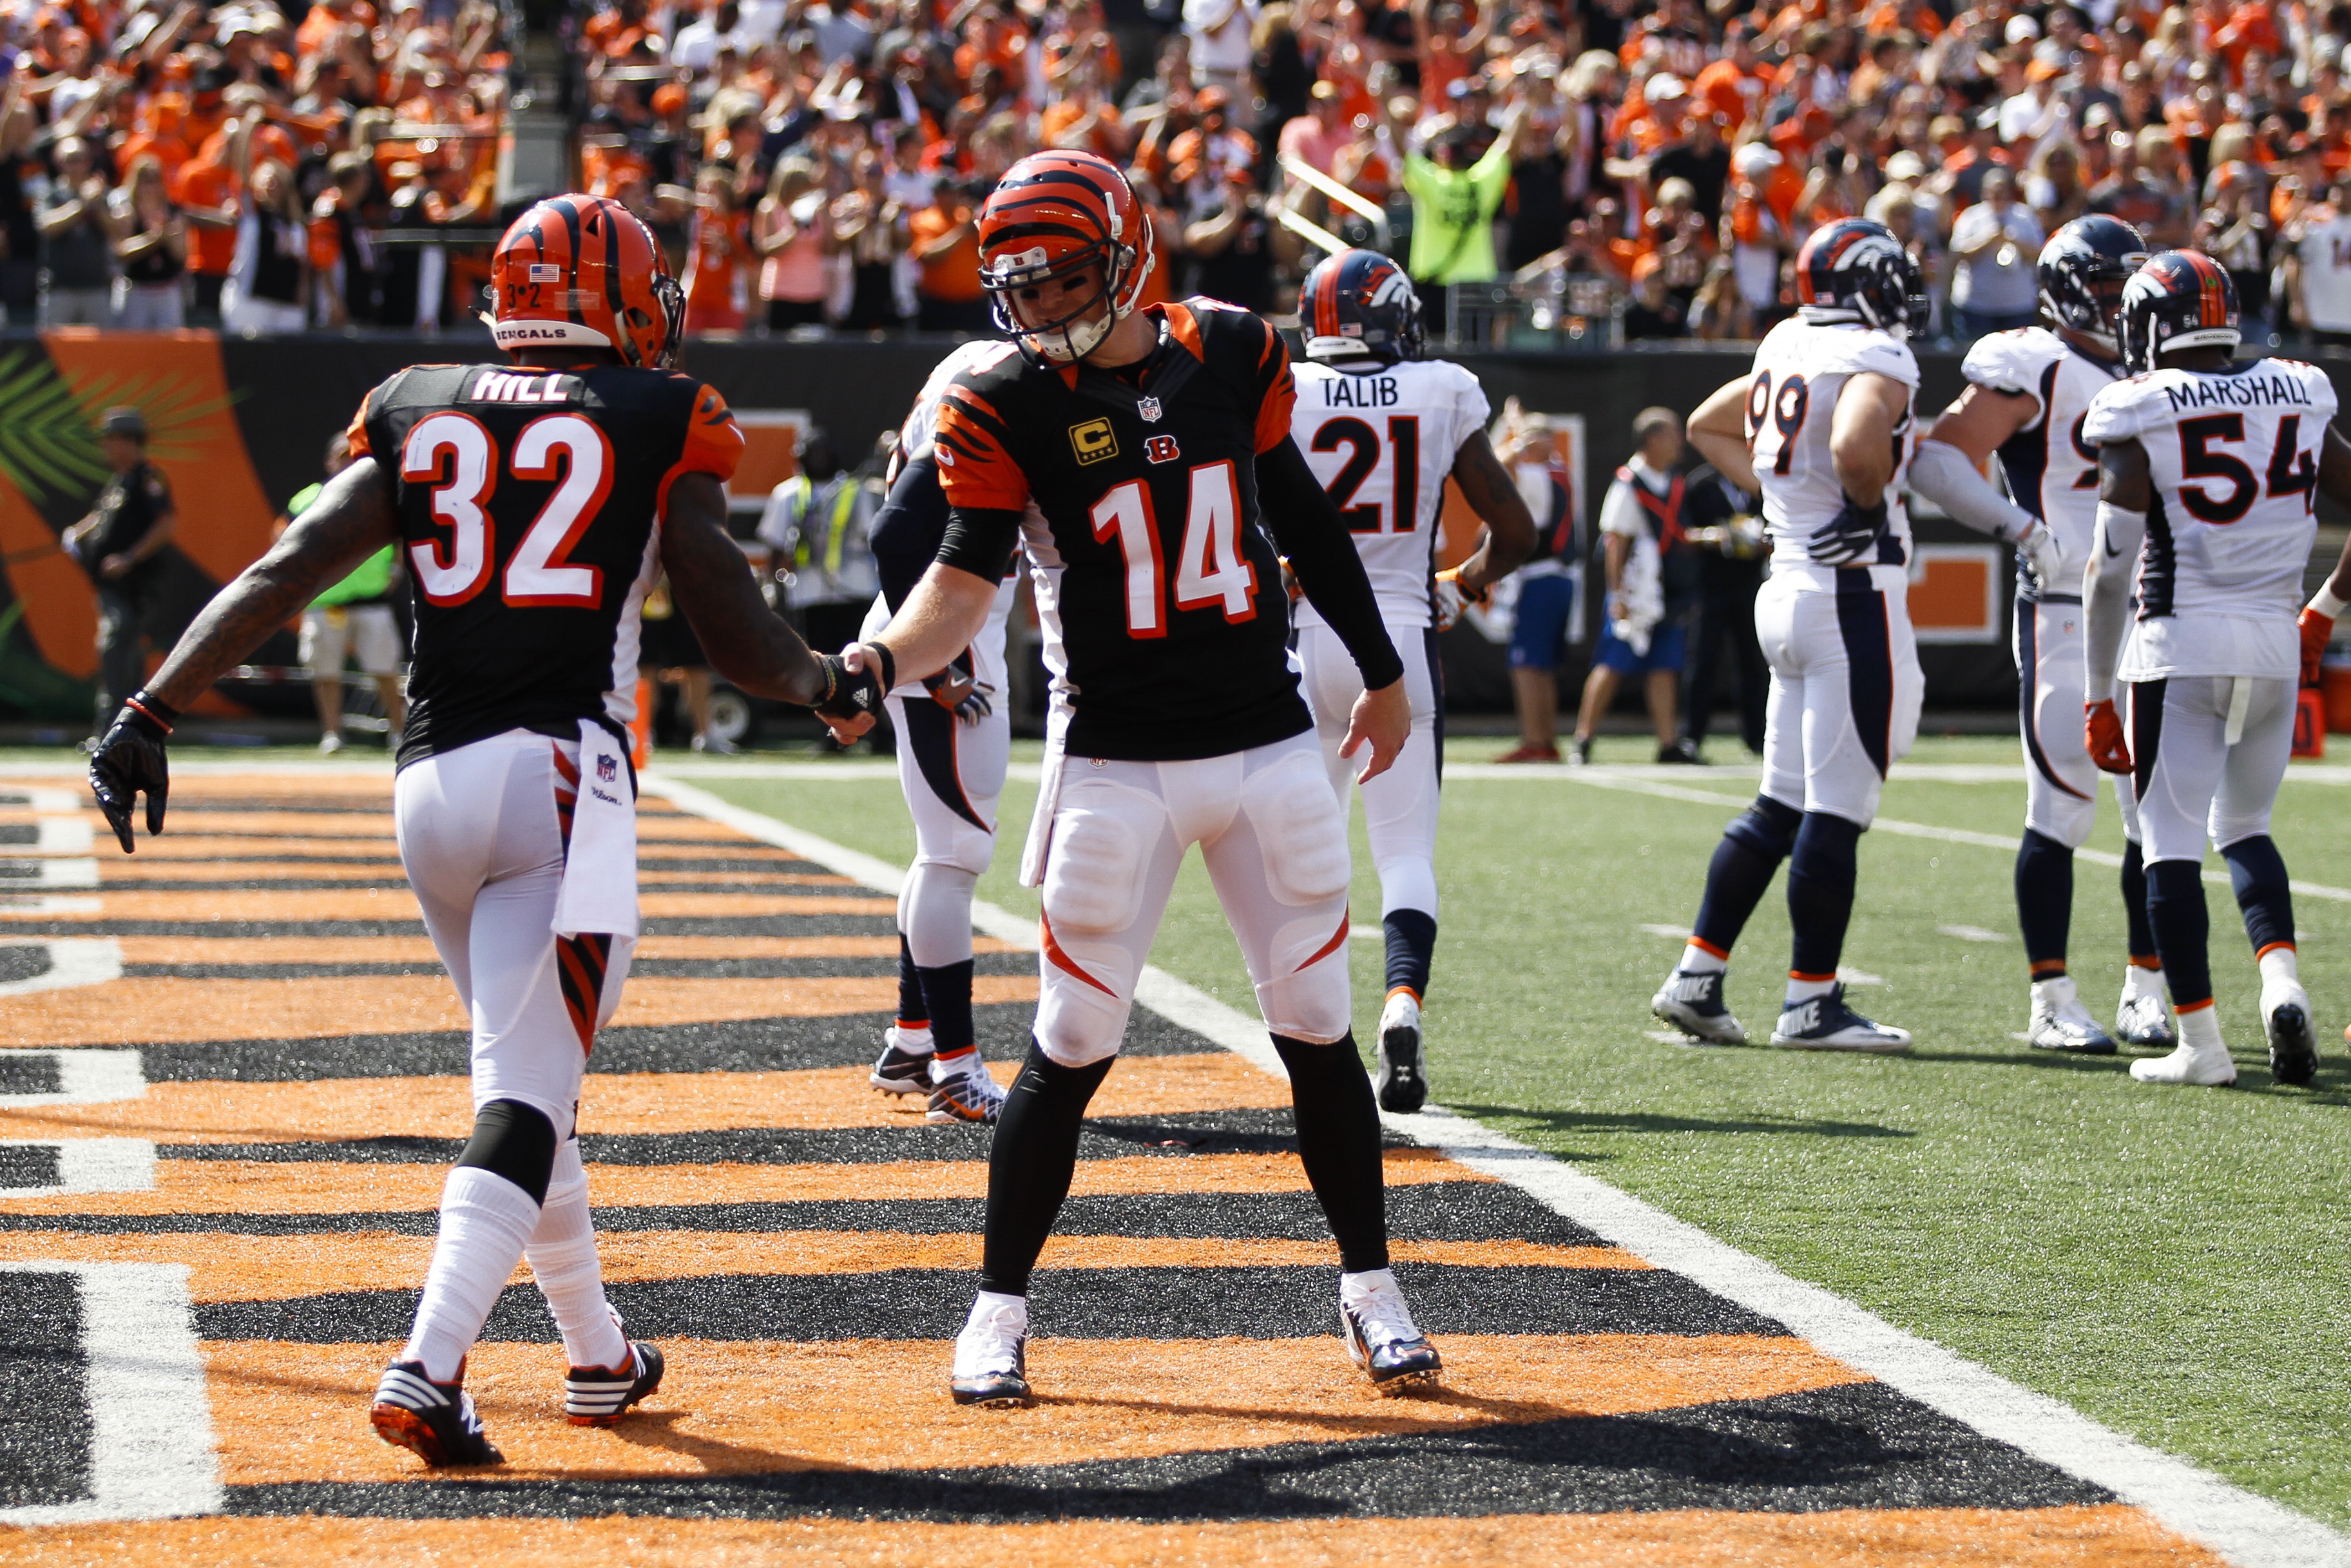 Cincinnati Bengals running back Jeremy Hill (32) celebrates with quarterback Andy Dalton (14) after scoring a touchdown during the first half of an NFL football game against the Denver Broncos, Sunday, Sept. 25, 2016, in Cincinnati. (AP Photo/Gary Landers